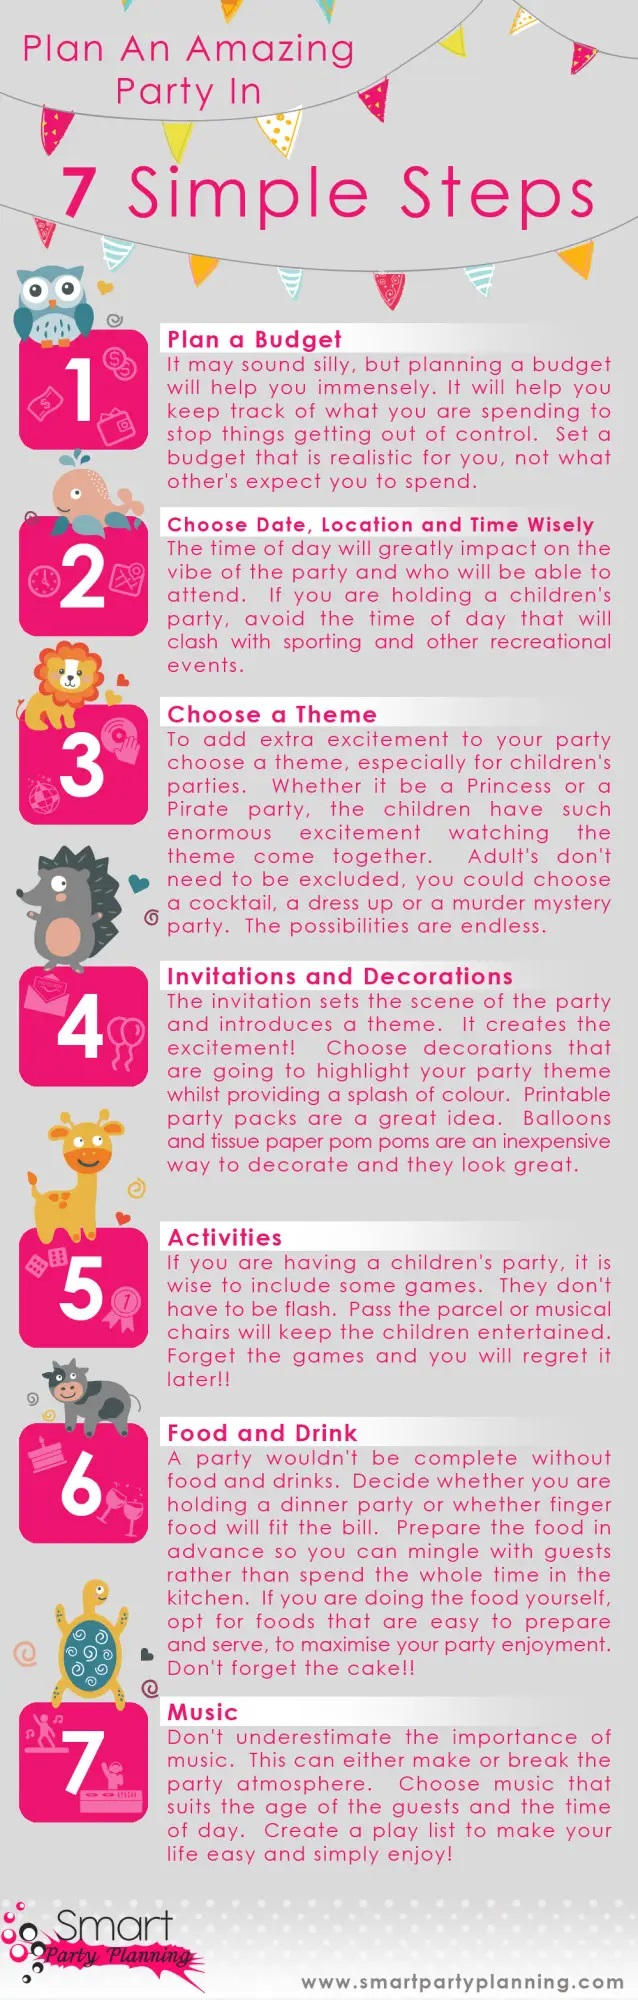 How To Plan A Party In 7 Easy Steps #infographic #Party #Party Planning #Party Budget Plan #Parties